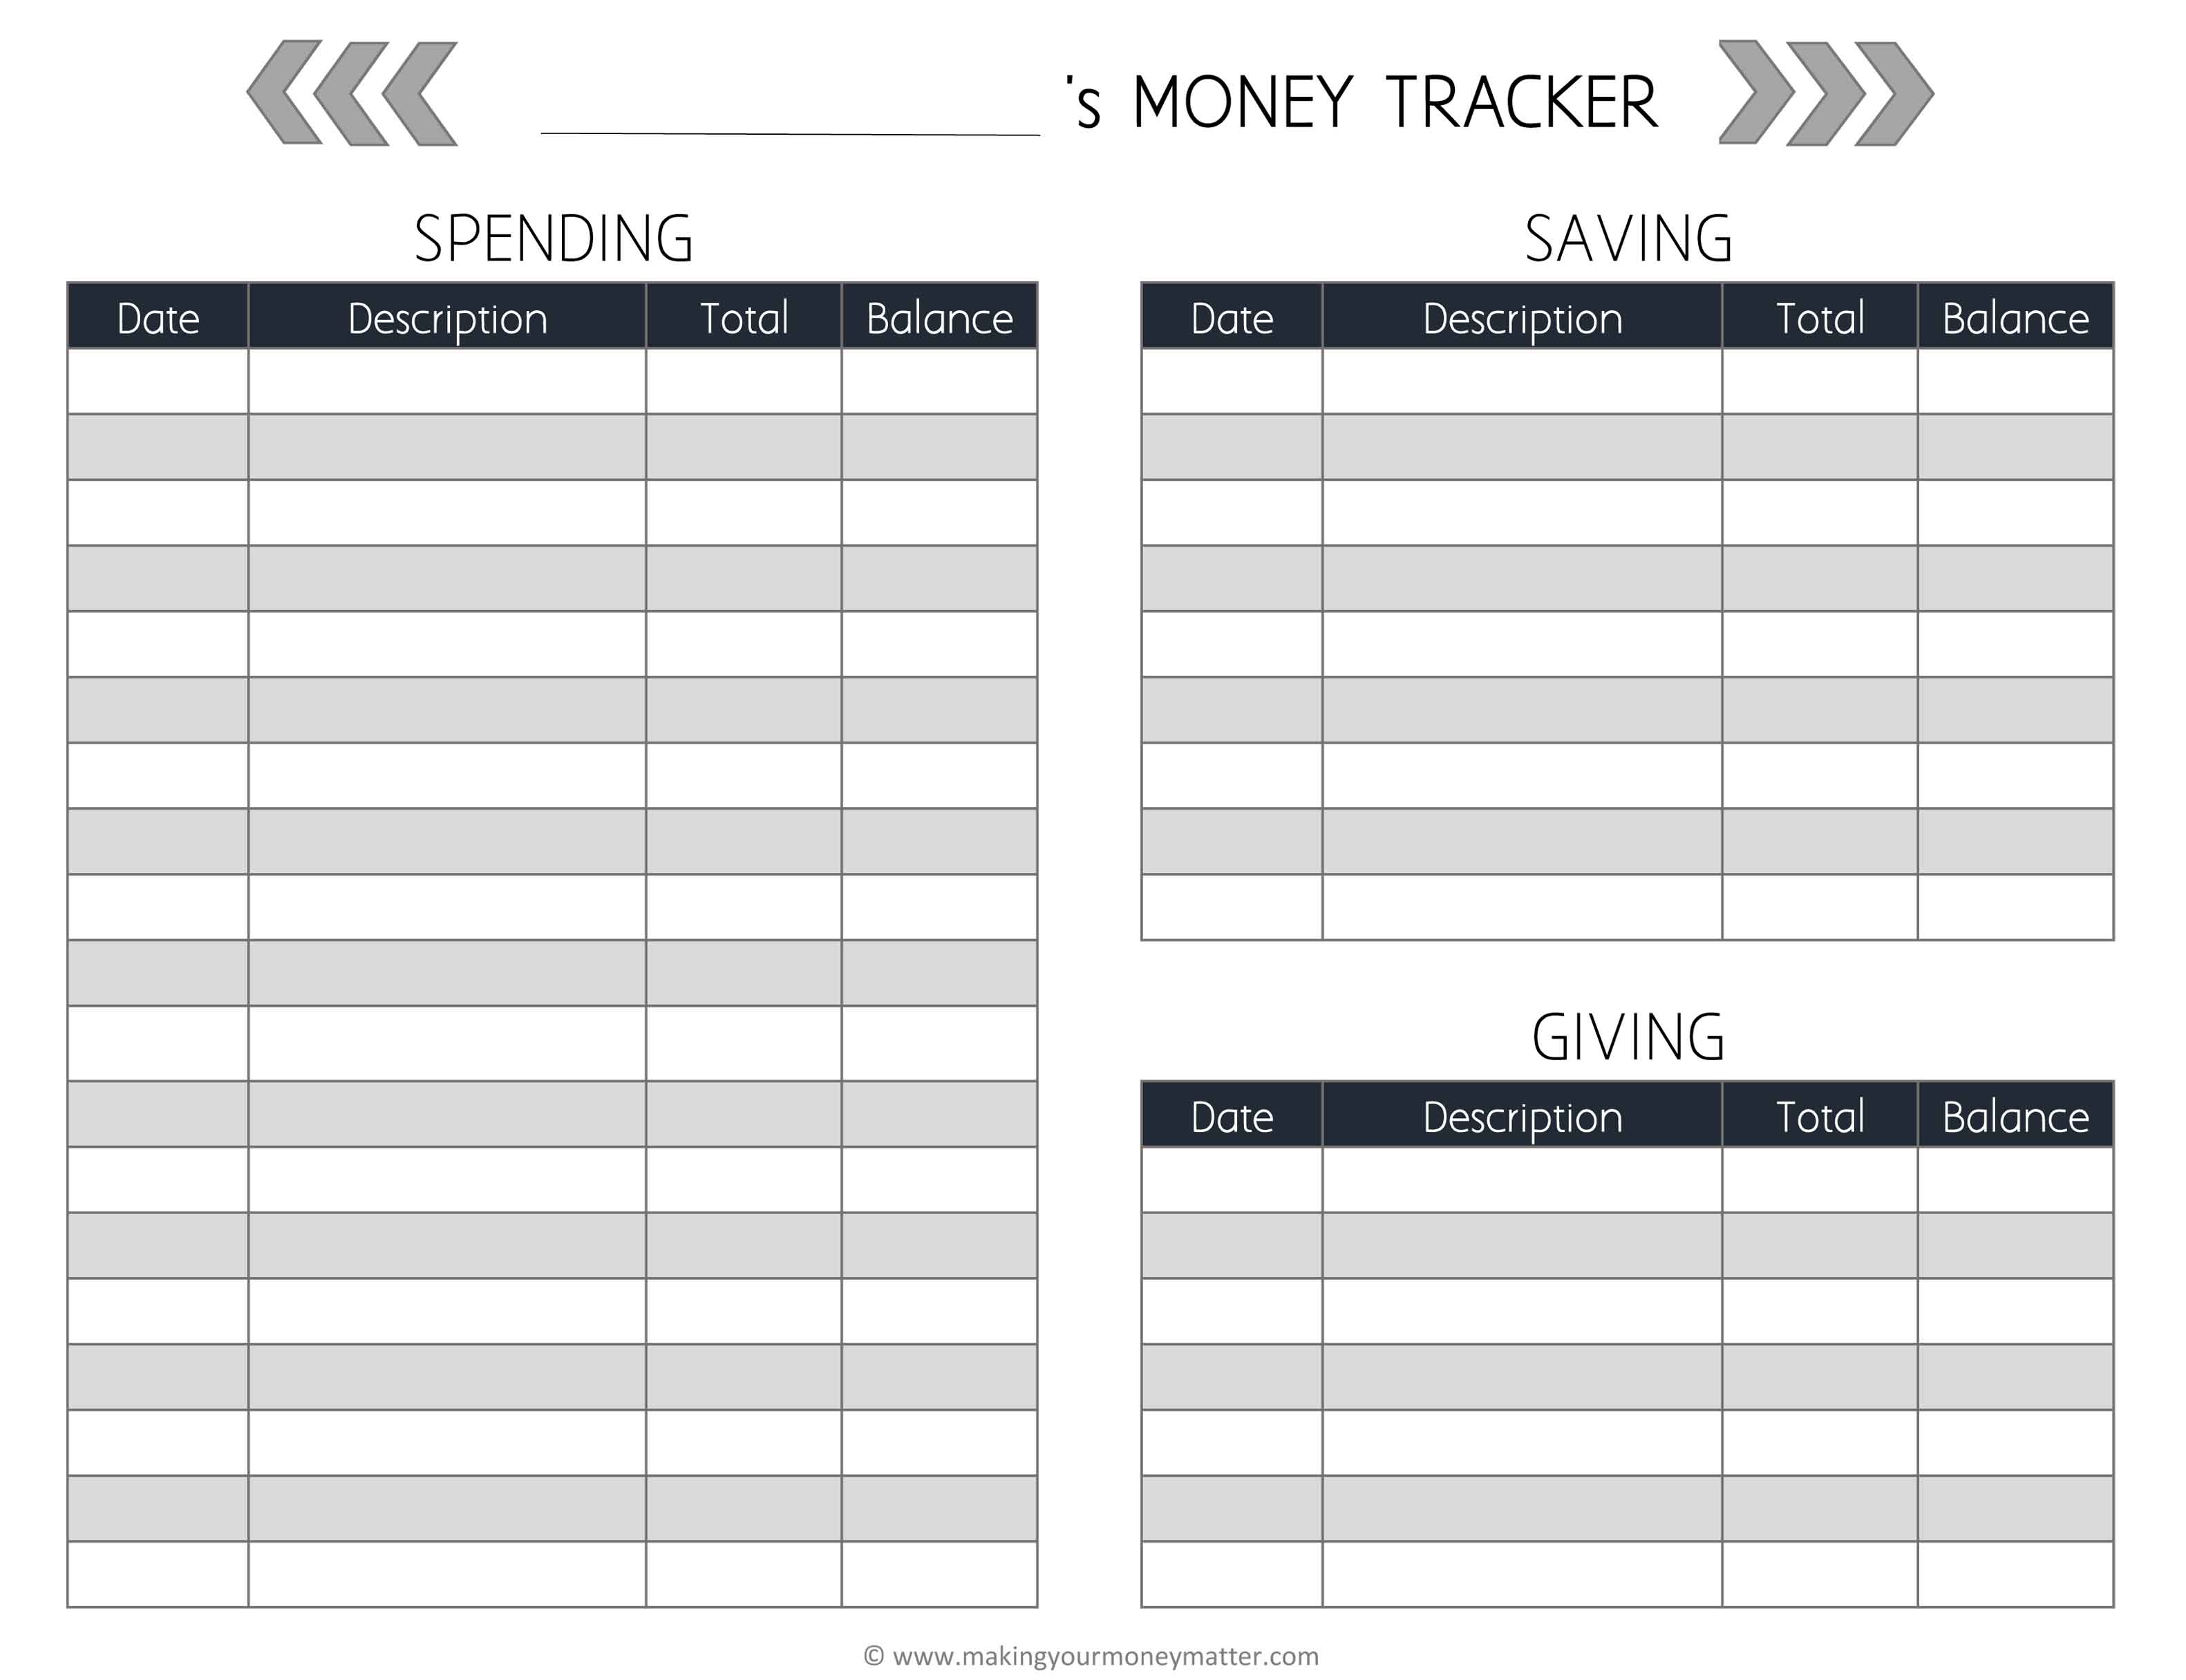 Worksheets Tracking Expenses Worksheet how to teach kids track their income expenses when they receive allowance 80 goes spending 10 saving and giving spend money deduct it from ba